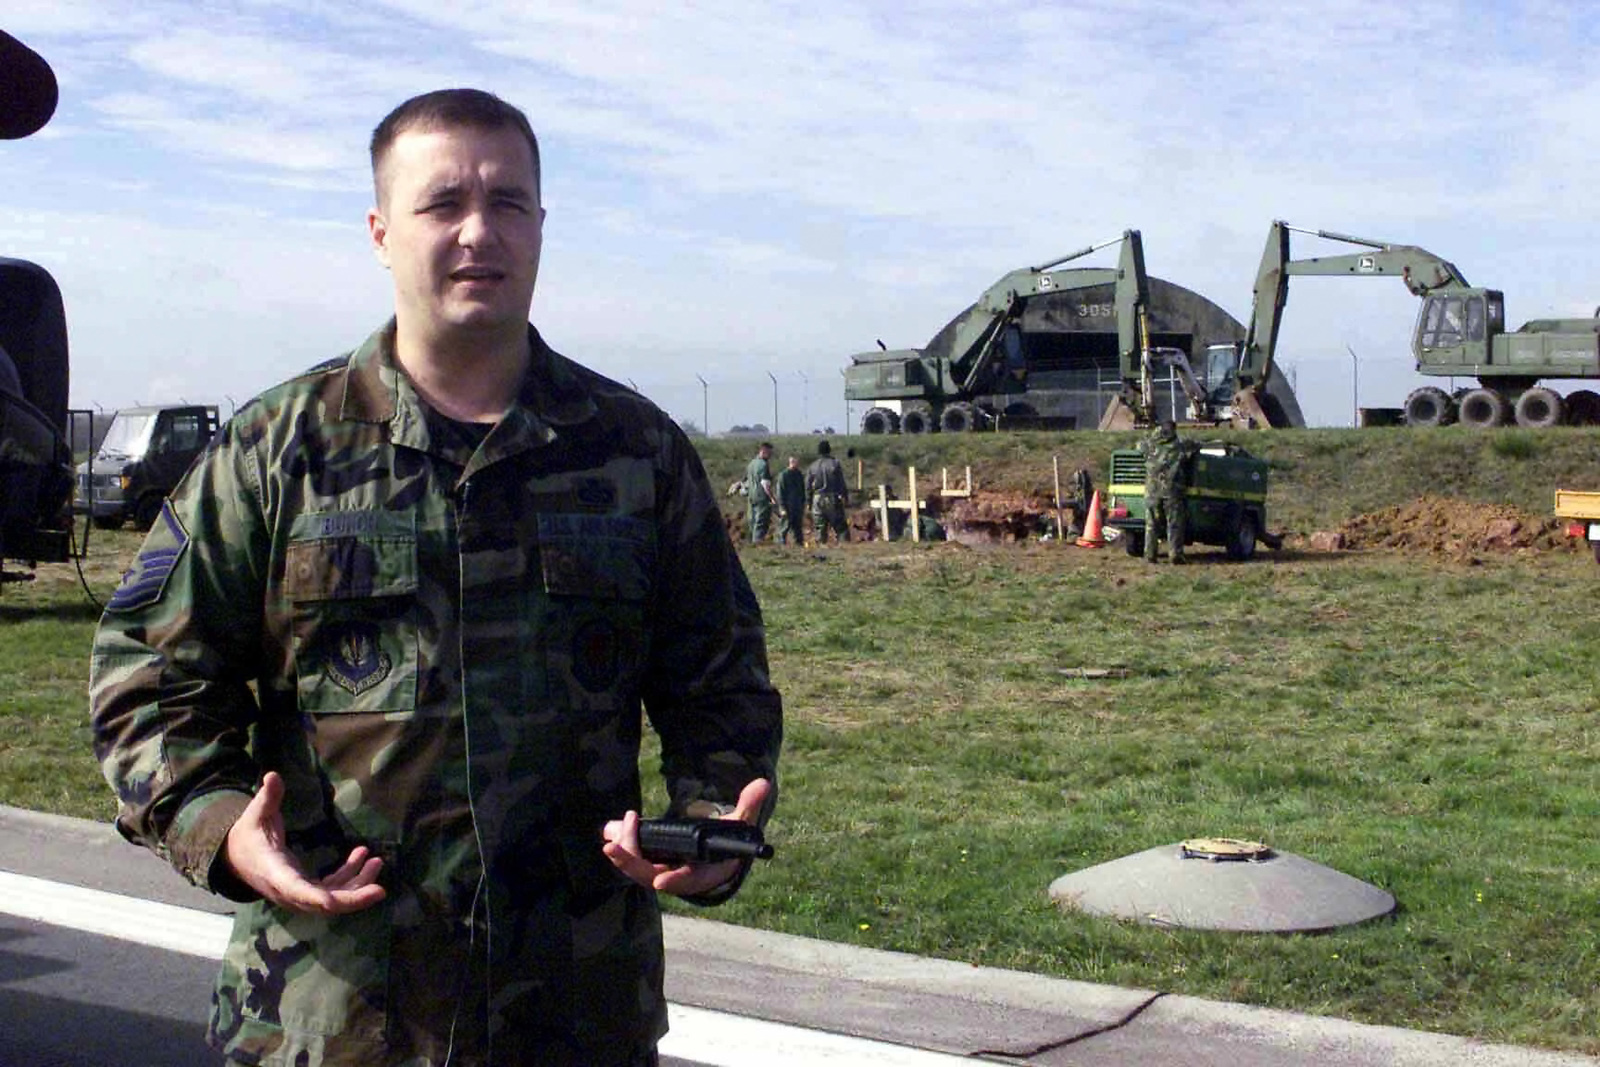 US Air Force (USAF) MASTER Sergeant (MSGT) Anthony Bunch, Airfield Manger, 52nd Operations Support Squadron (OSS) supervises a flight line modification project underway at Spangdahlem Air Base (AB), Germany